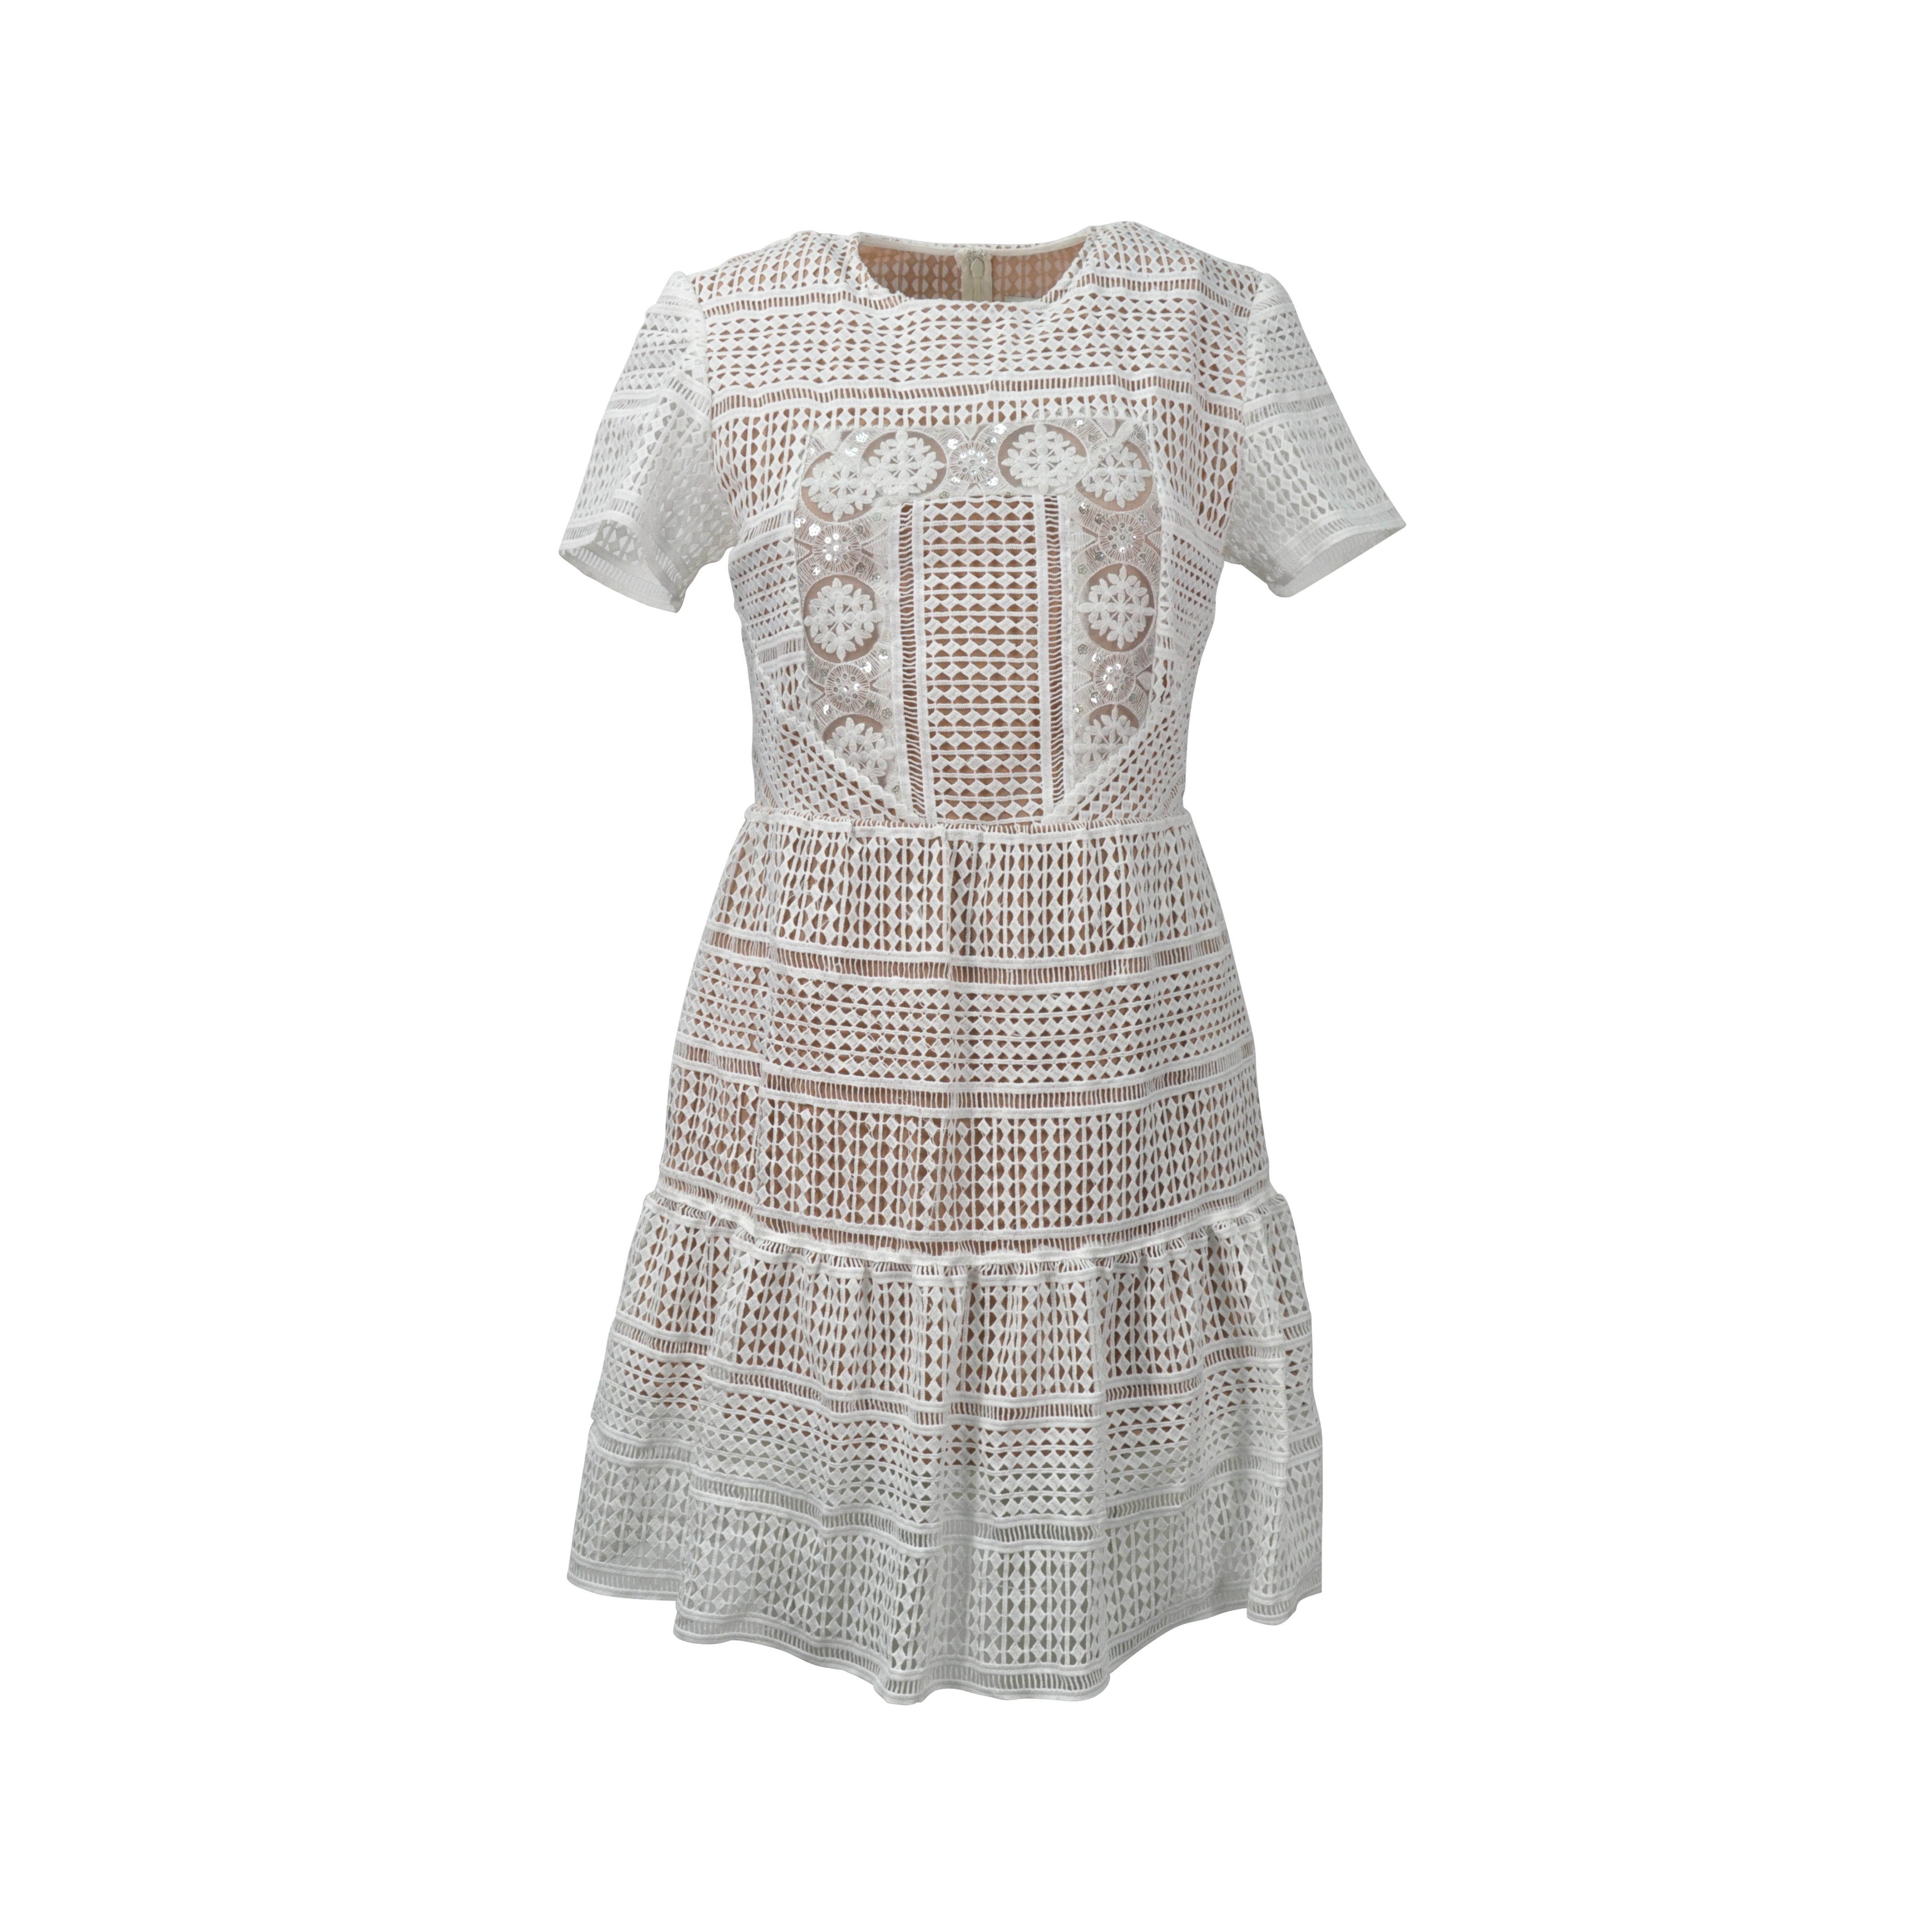 fe5777b7cc48b Authentic Second Hand Self-Portrait Patchwork Lace Dress (PSS-096-00014) |  THE FIFTH COLLECTION